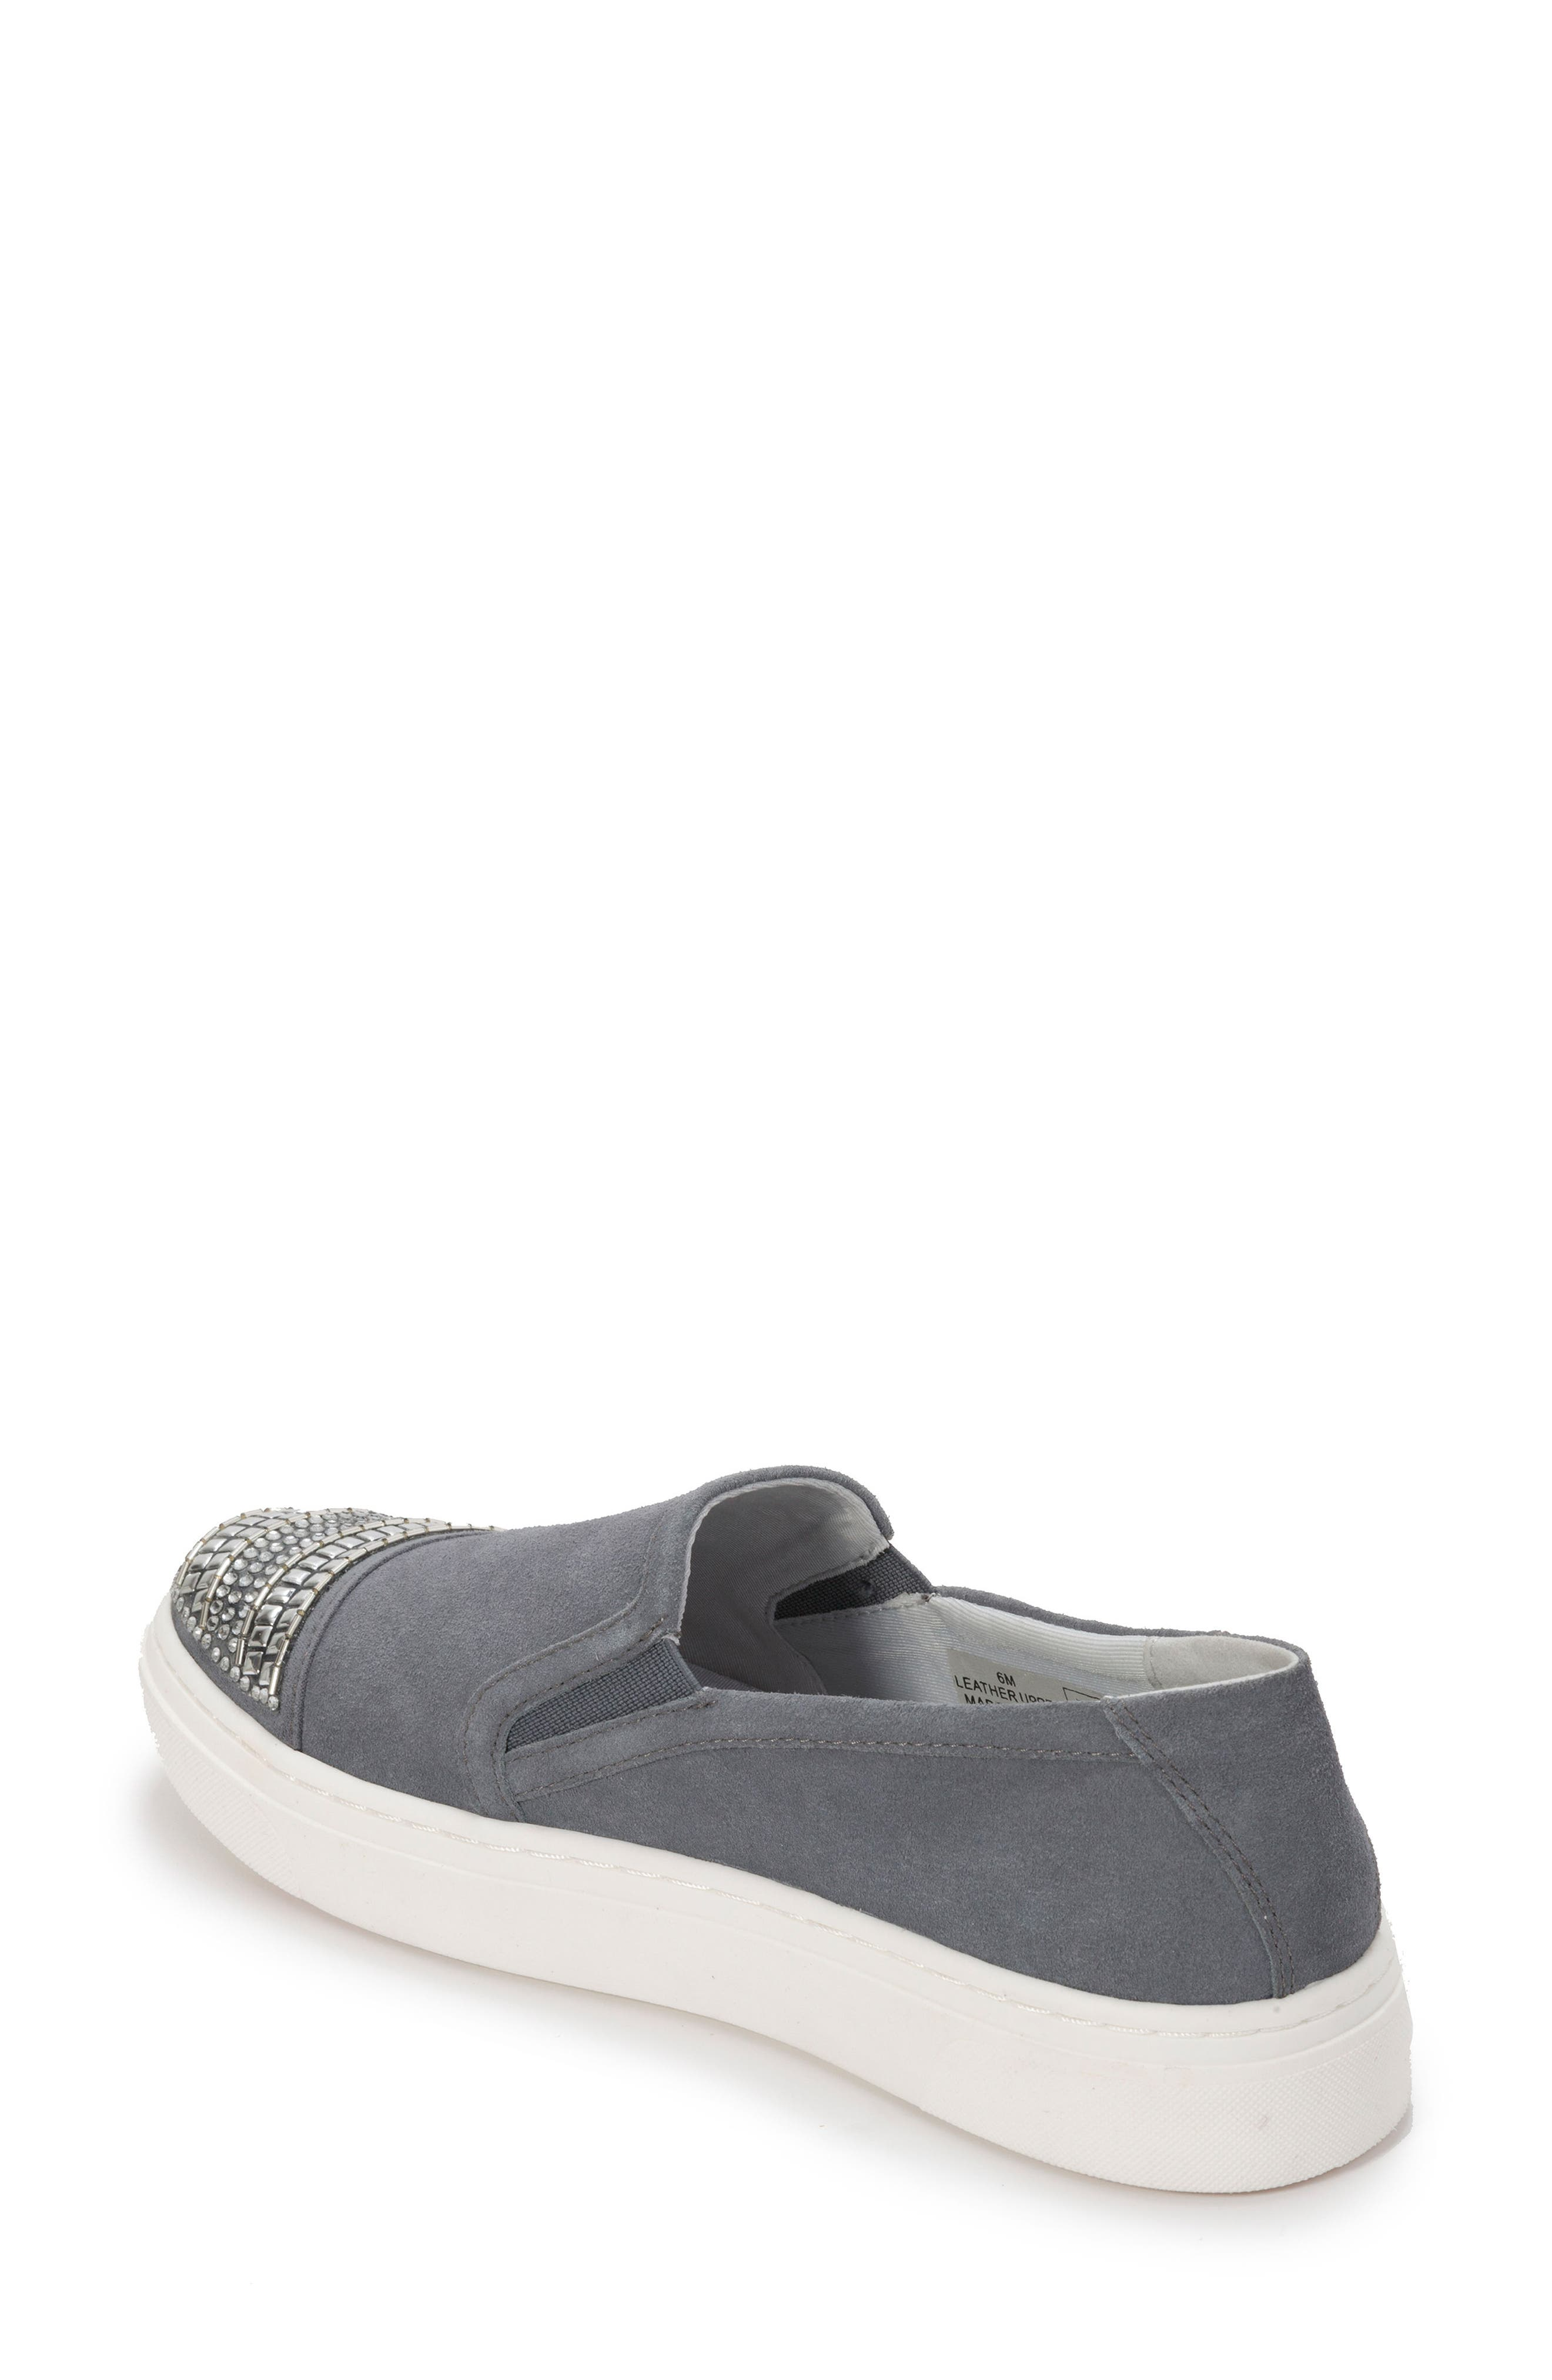 Finley Slip-On Sneaker,                             Alternate thumbnail 2, color,                             Denim Blue Suede